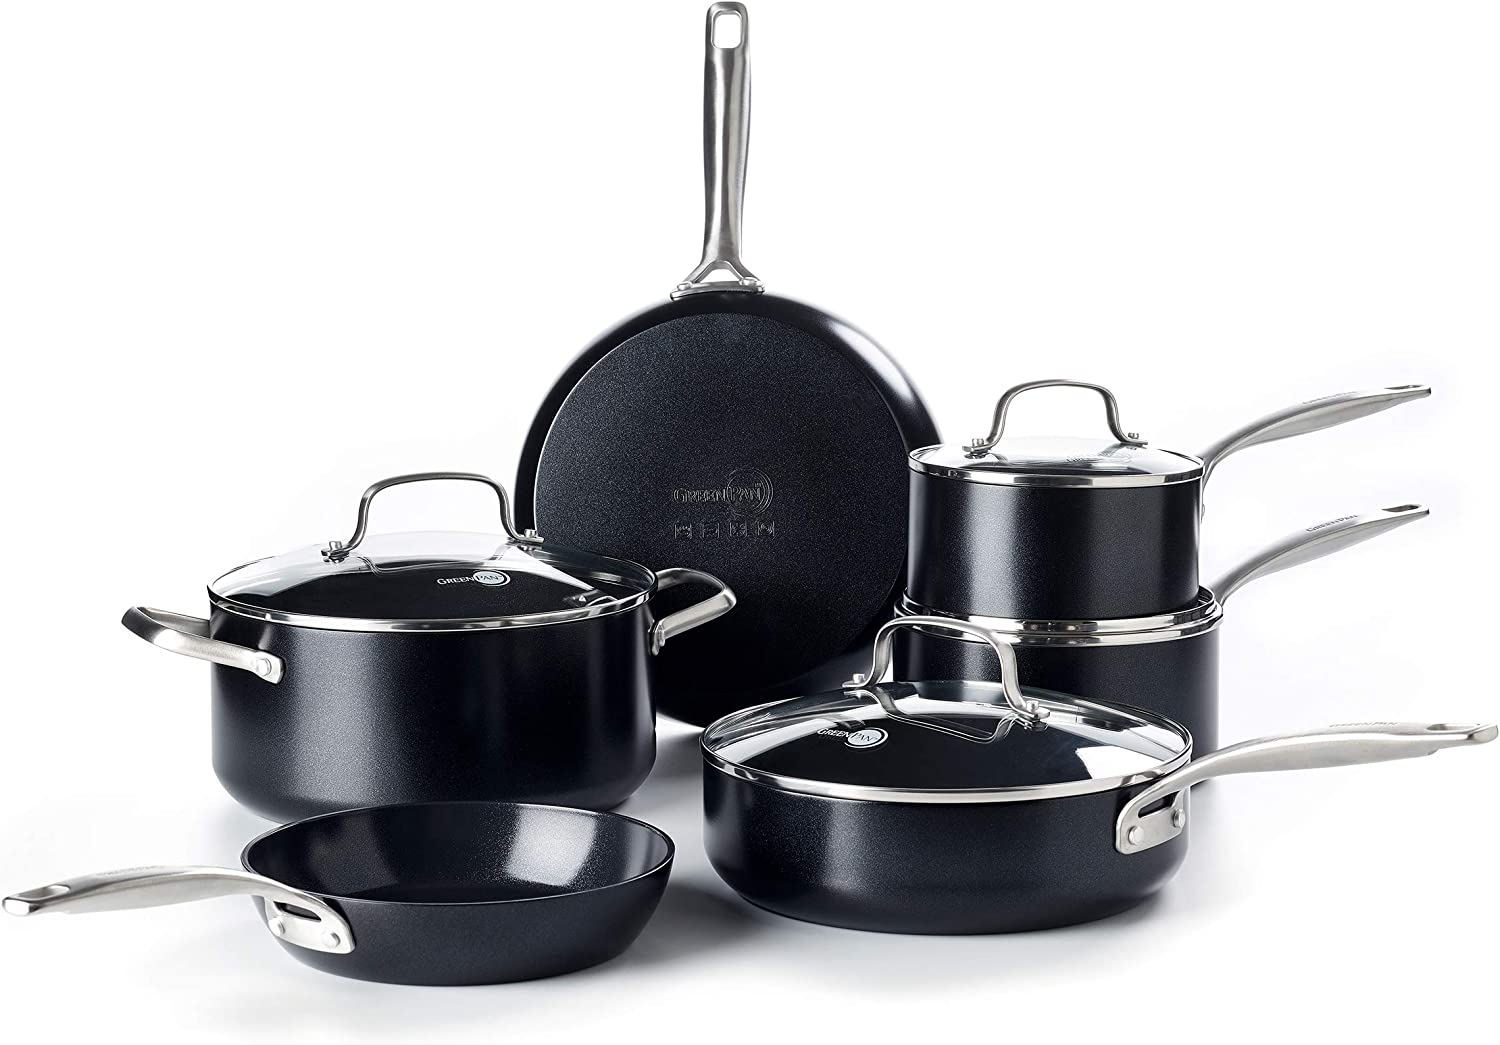 GreenPan CC002357-001 Profile Healthy Ceramic Nonstick Cookware Set, 10pc, Black